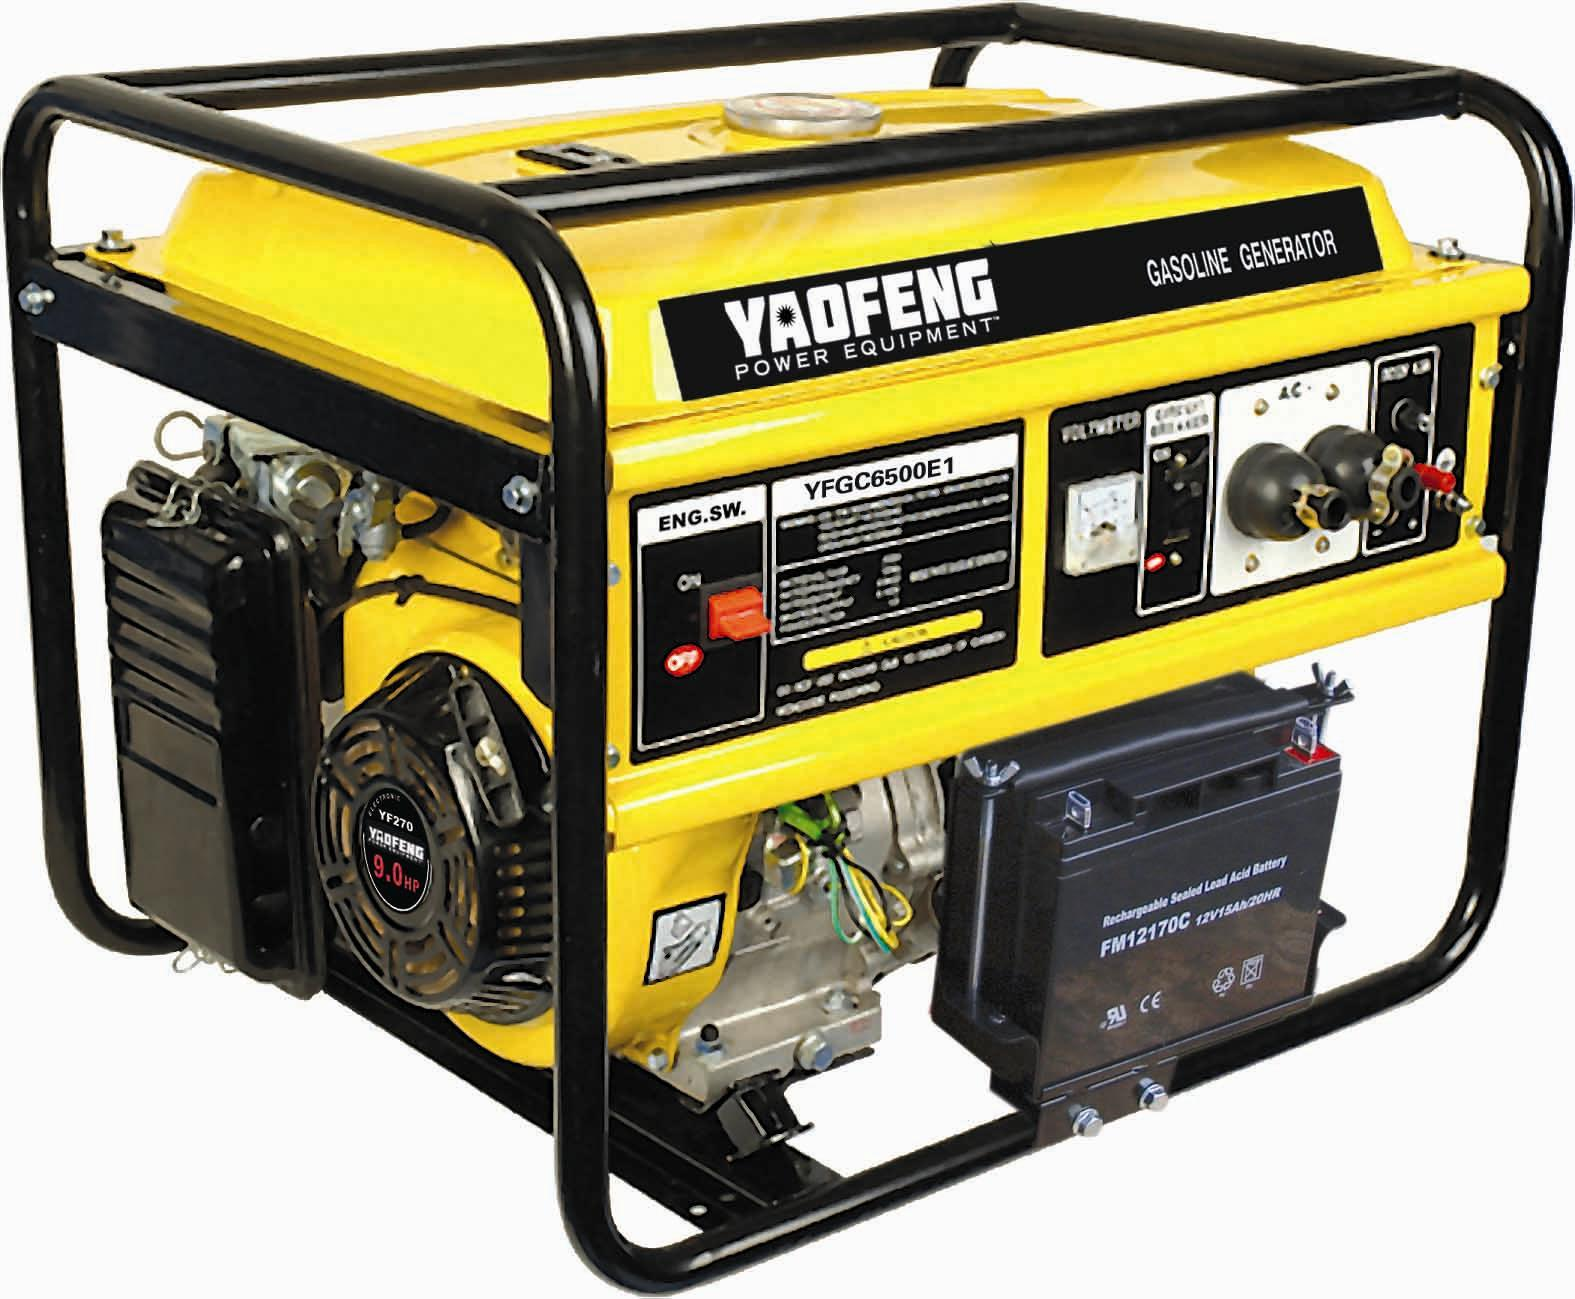 6000 Watts Portable Power Gasoline Generator with EPA, Carb, CE, Soncap Certificate (YFGC7500E1)